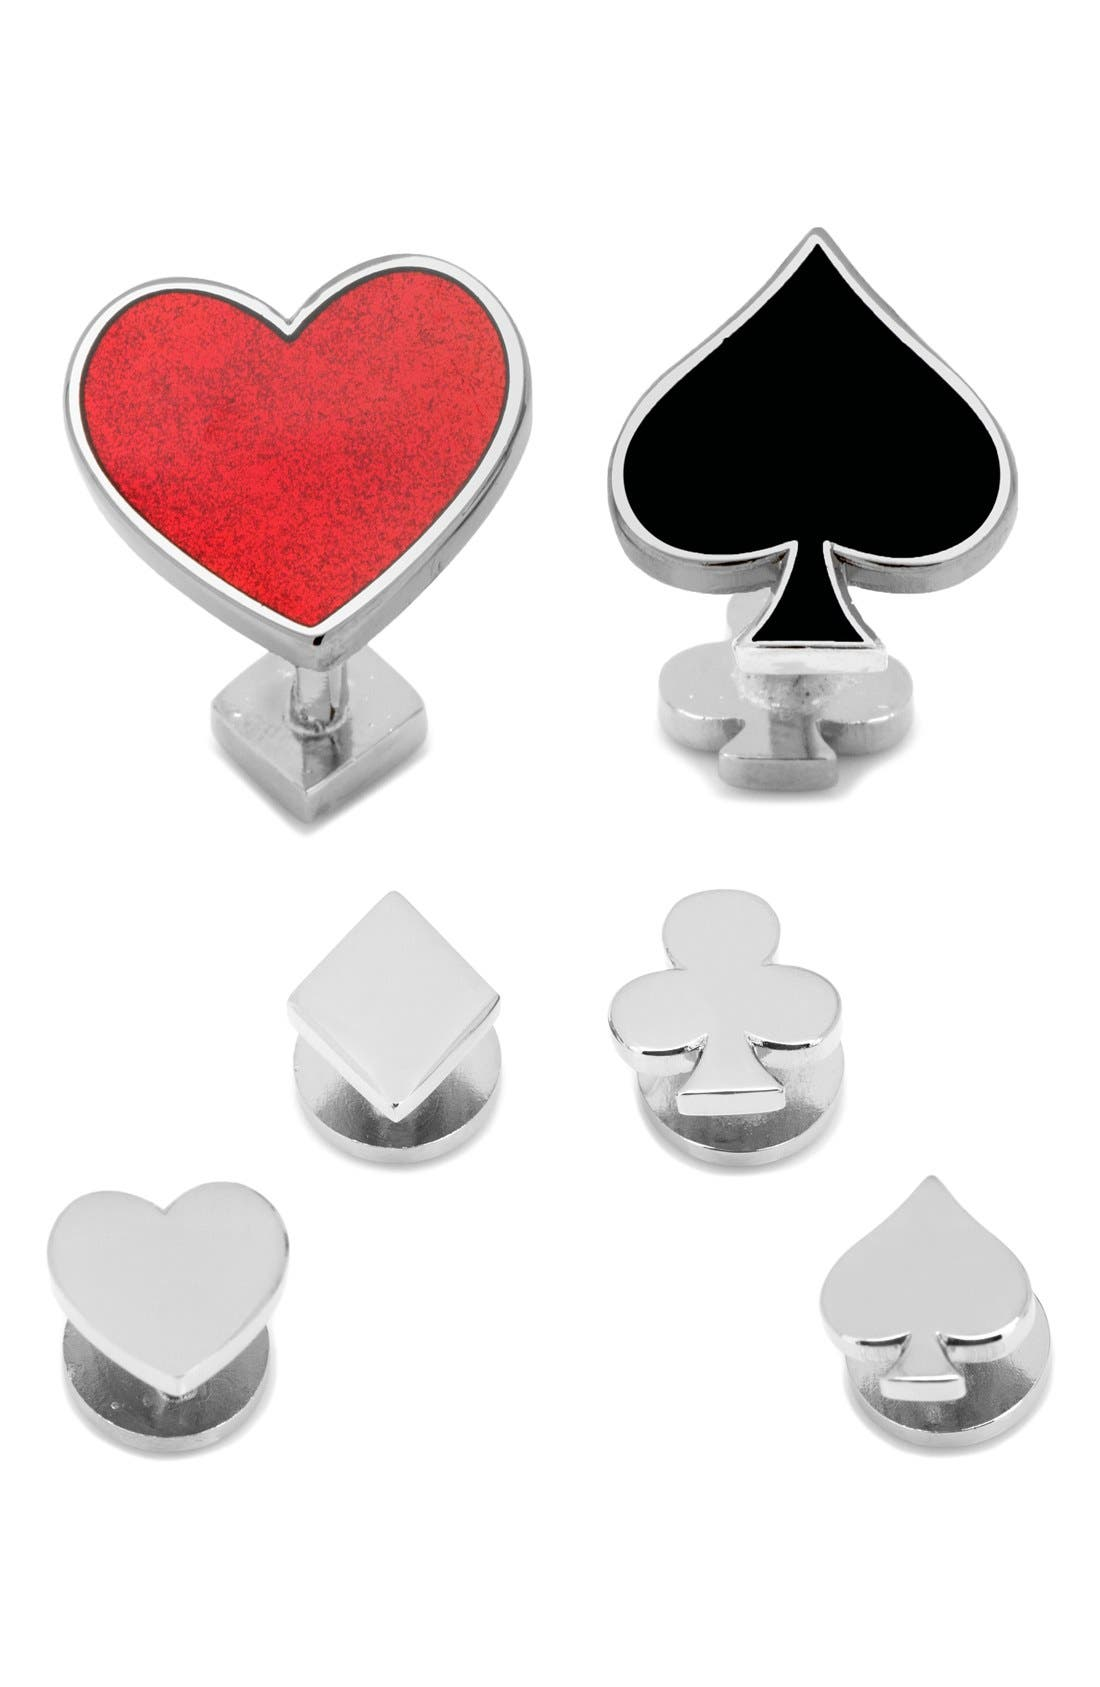 Ox and Bull Trading Co. 'Card Suit' Cuff Links & Shirt Studs Set